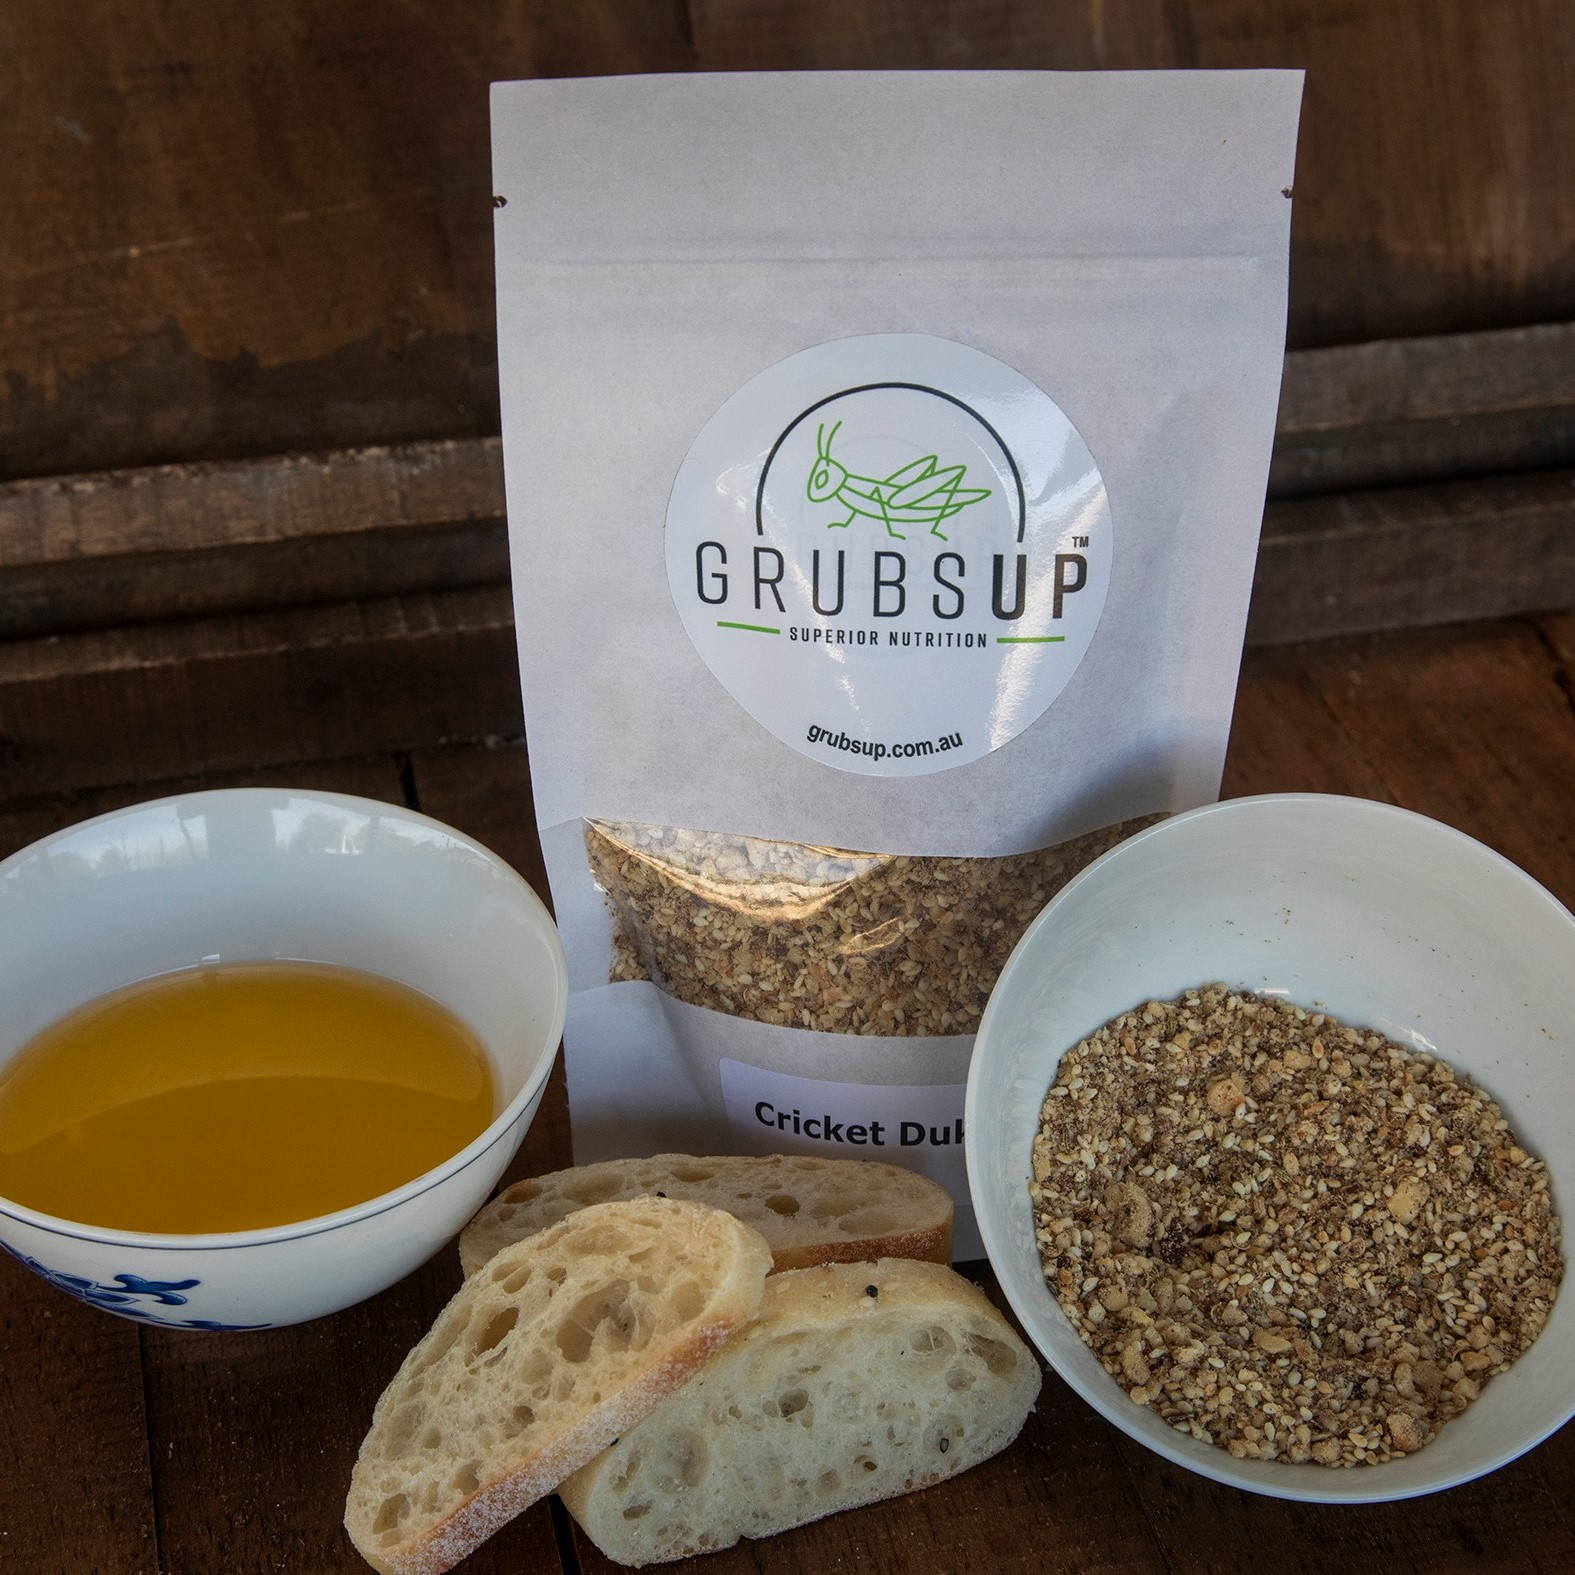 Superior Nutrition Products | Our Products | Grubs Up | Best Protein-Rich Dukkha Mix | Delicious Cricket Hazelnut Dukkha